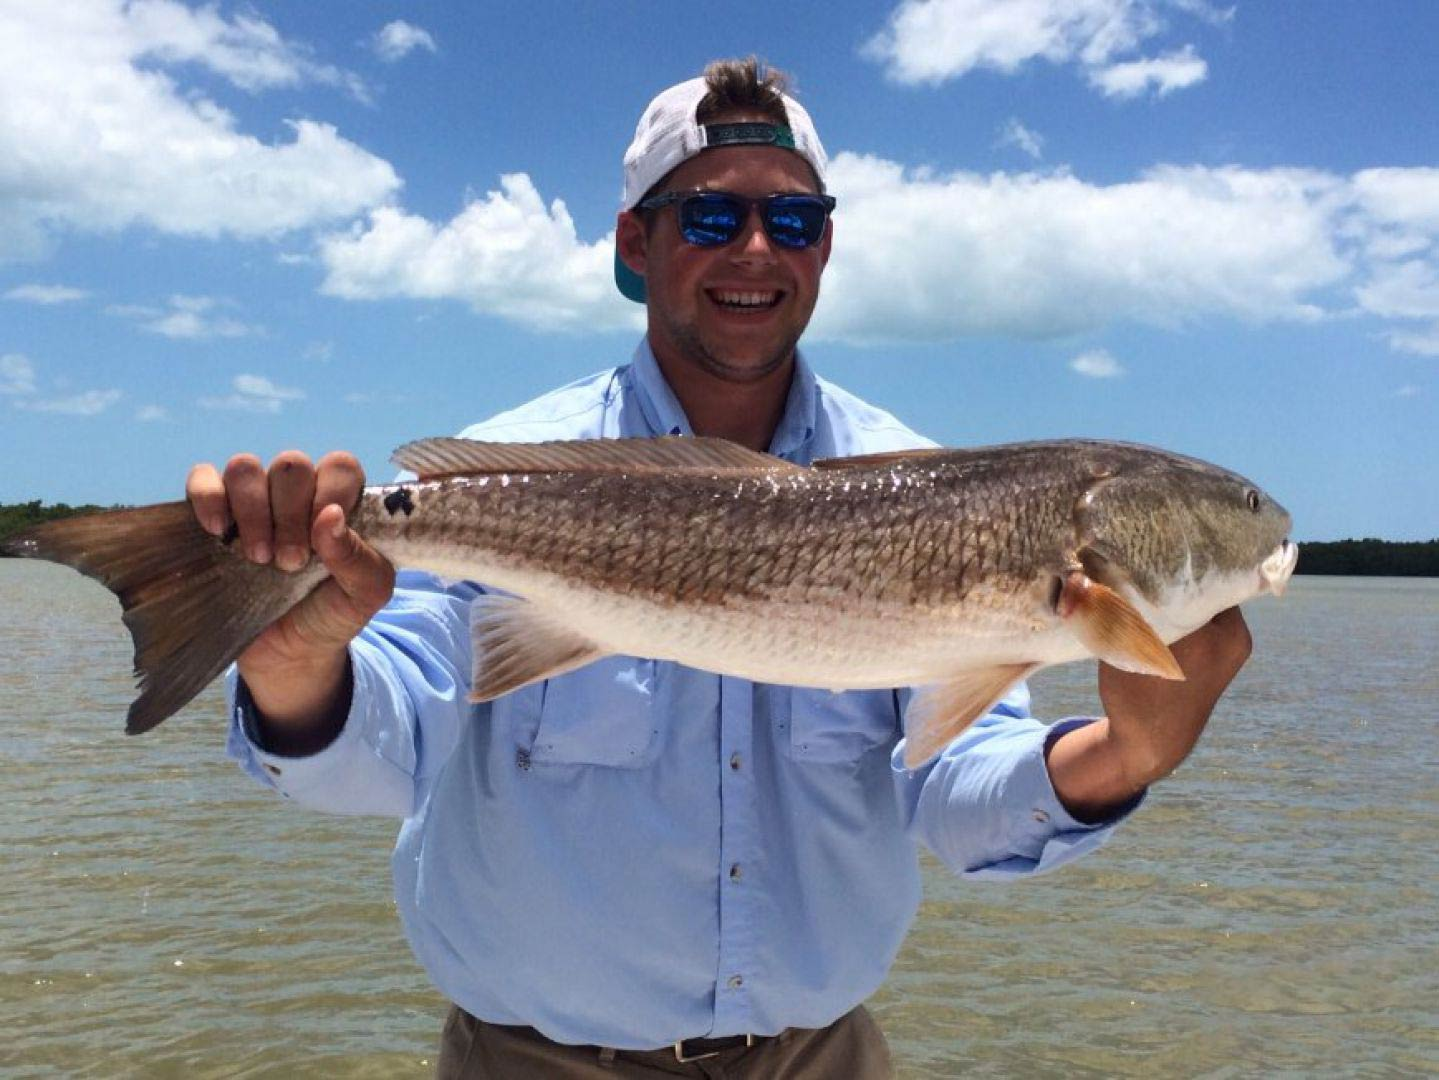 A man holding a Redfish in the Everglades, Florida